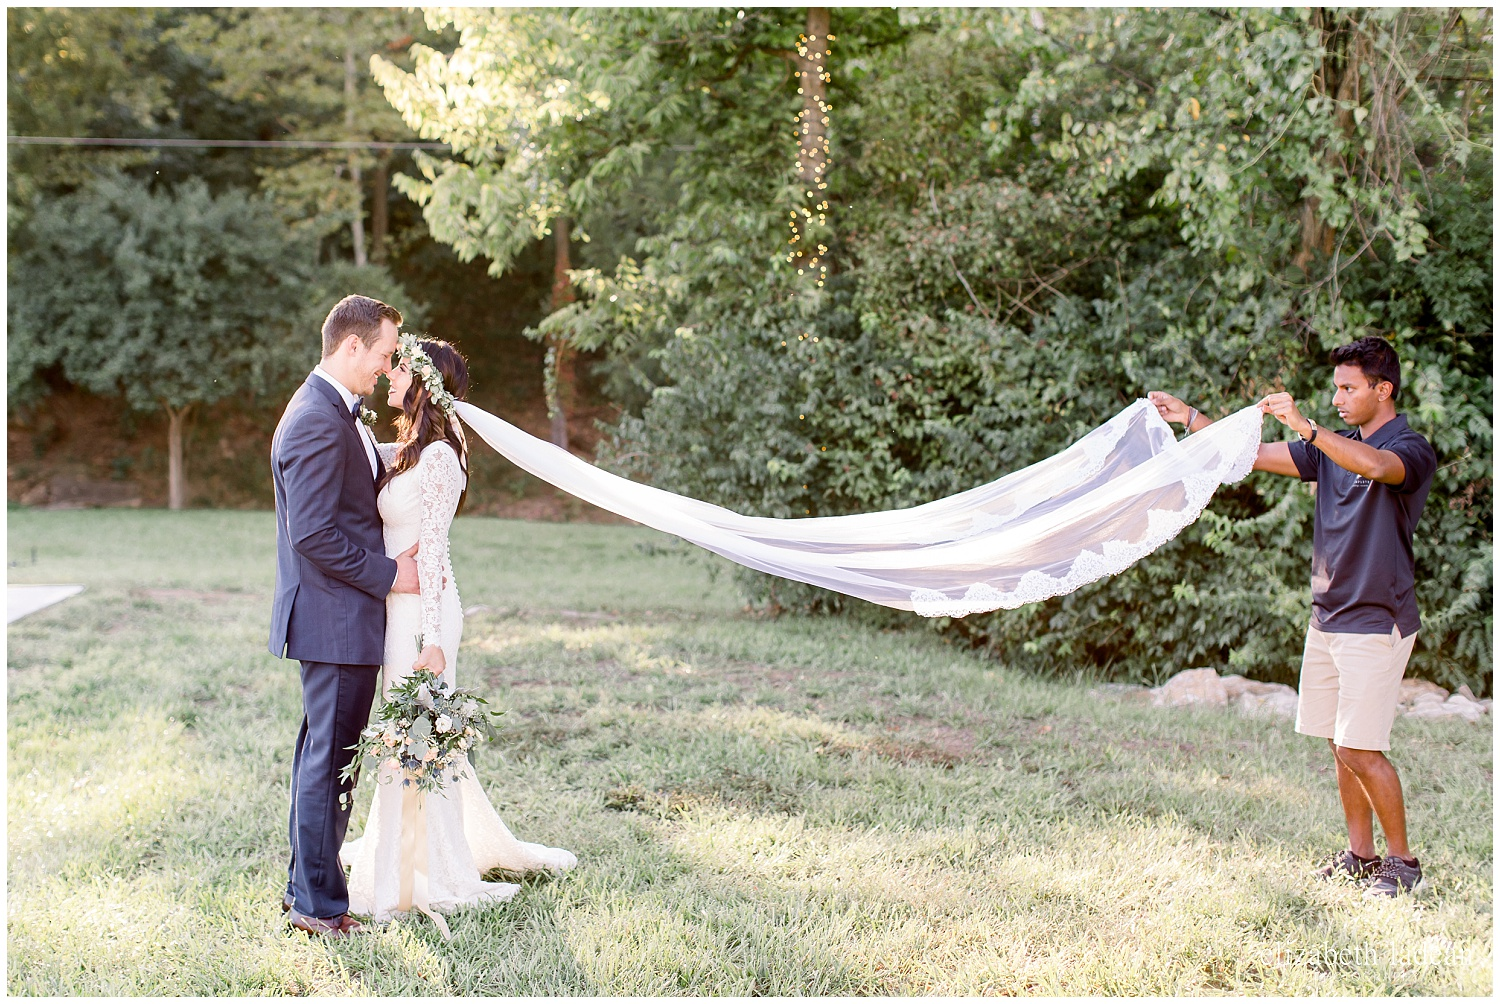 -behind-the-scenes-of-a-wedding-photographer-2018-elizabeth-ladean-photography-photo_3544.jpg